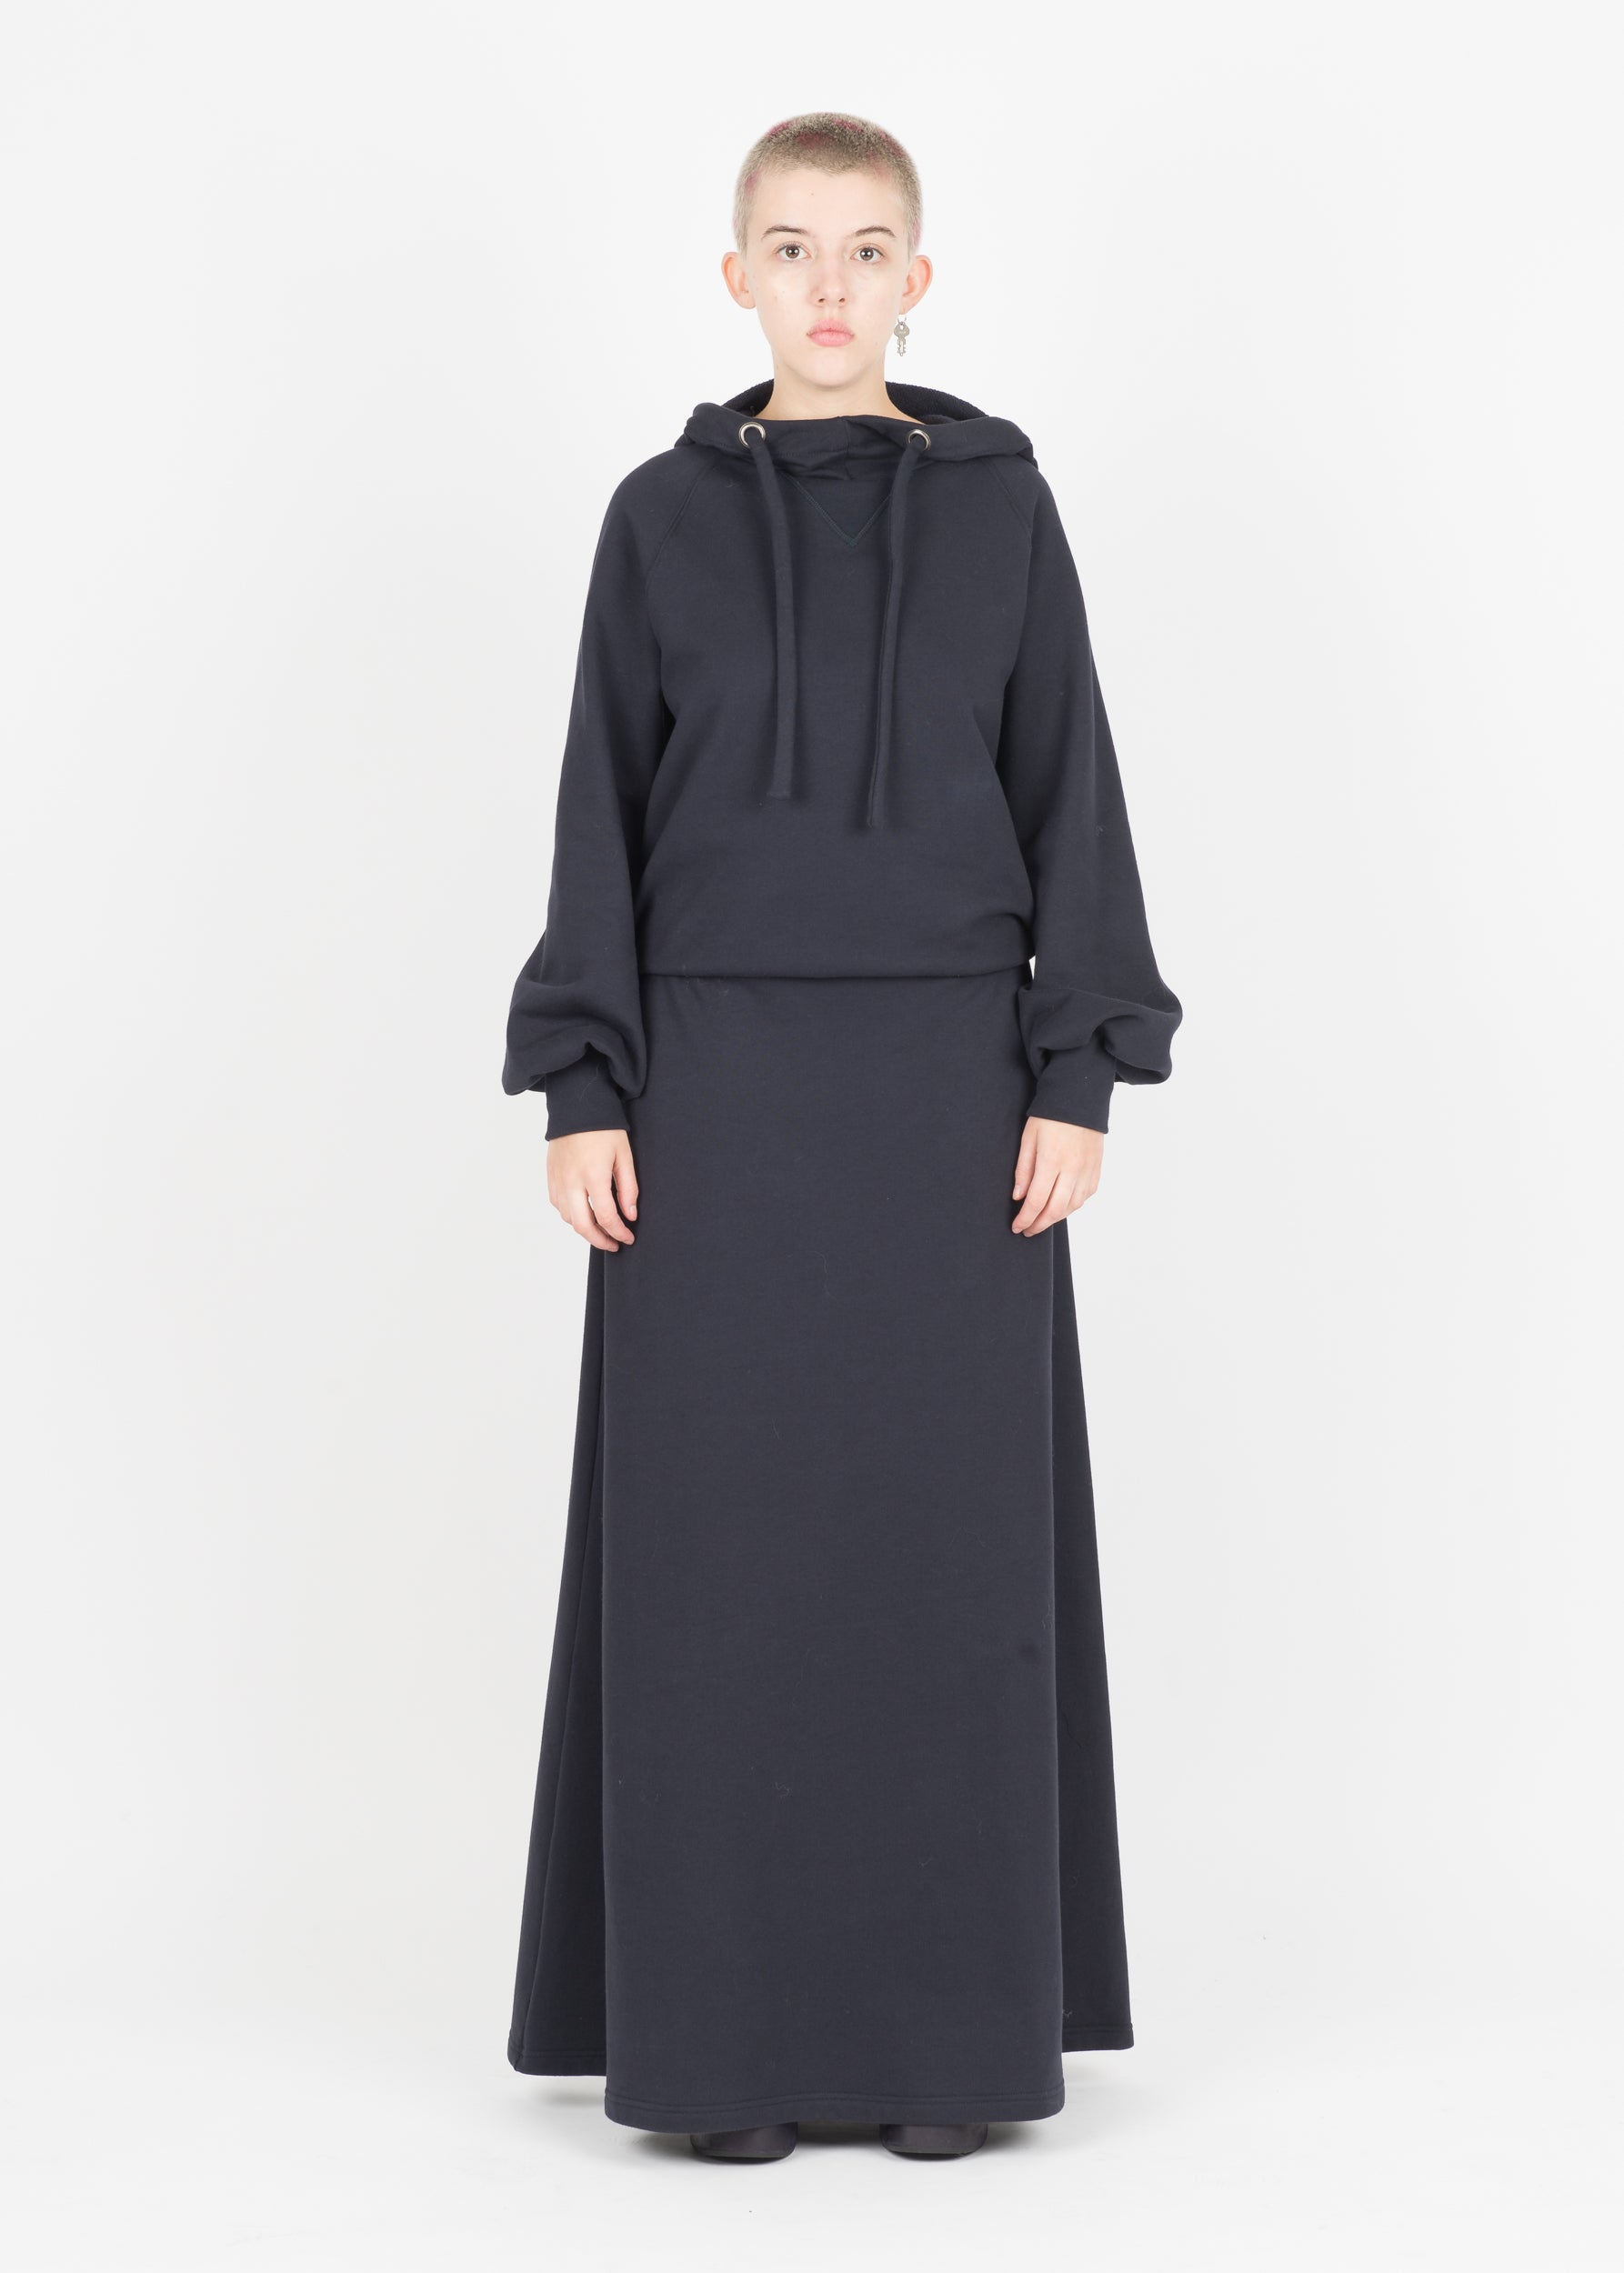 MAISON MARGIELA A/W 17 HOODED JERSEY MAXI DRESS